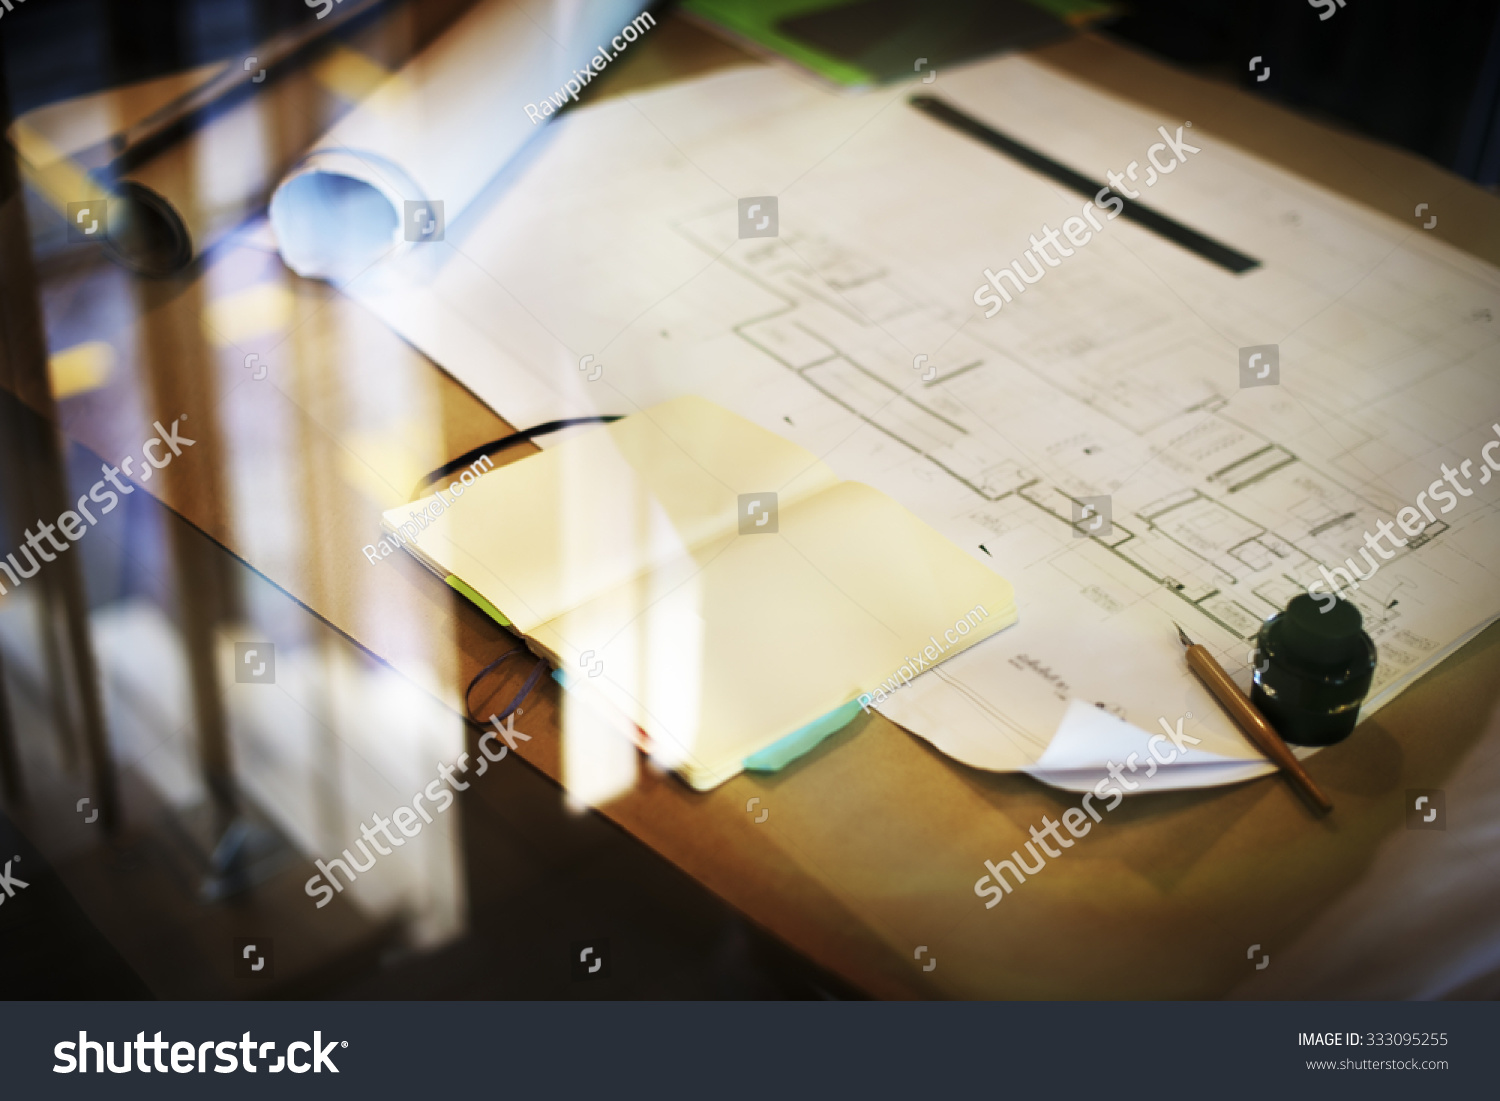 Construction blueprint project working planning concept stock construction blueprint project working planning concept malvernweather